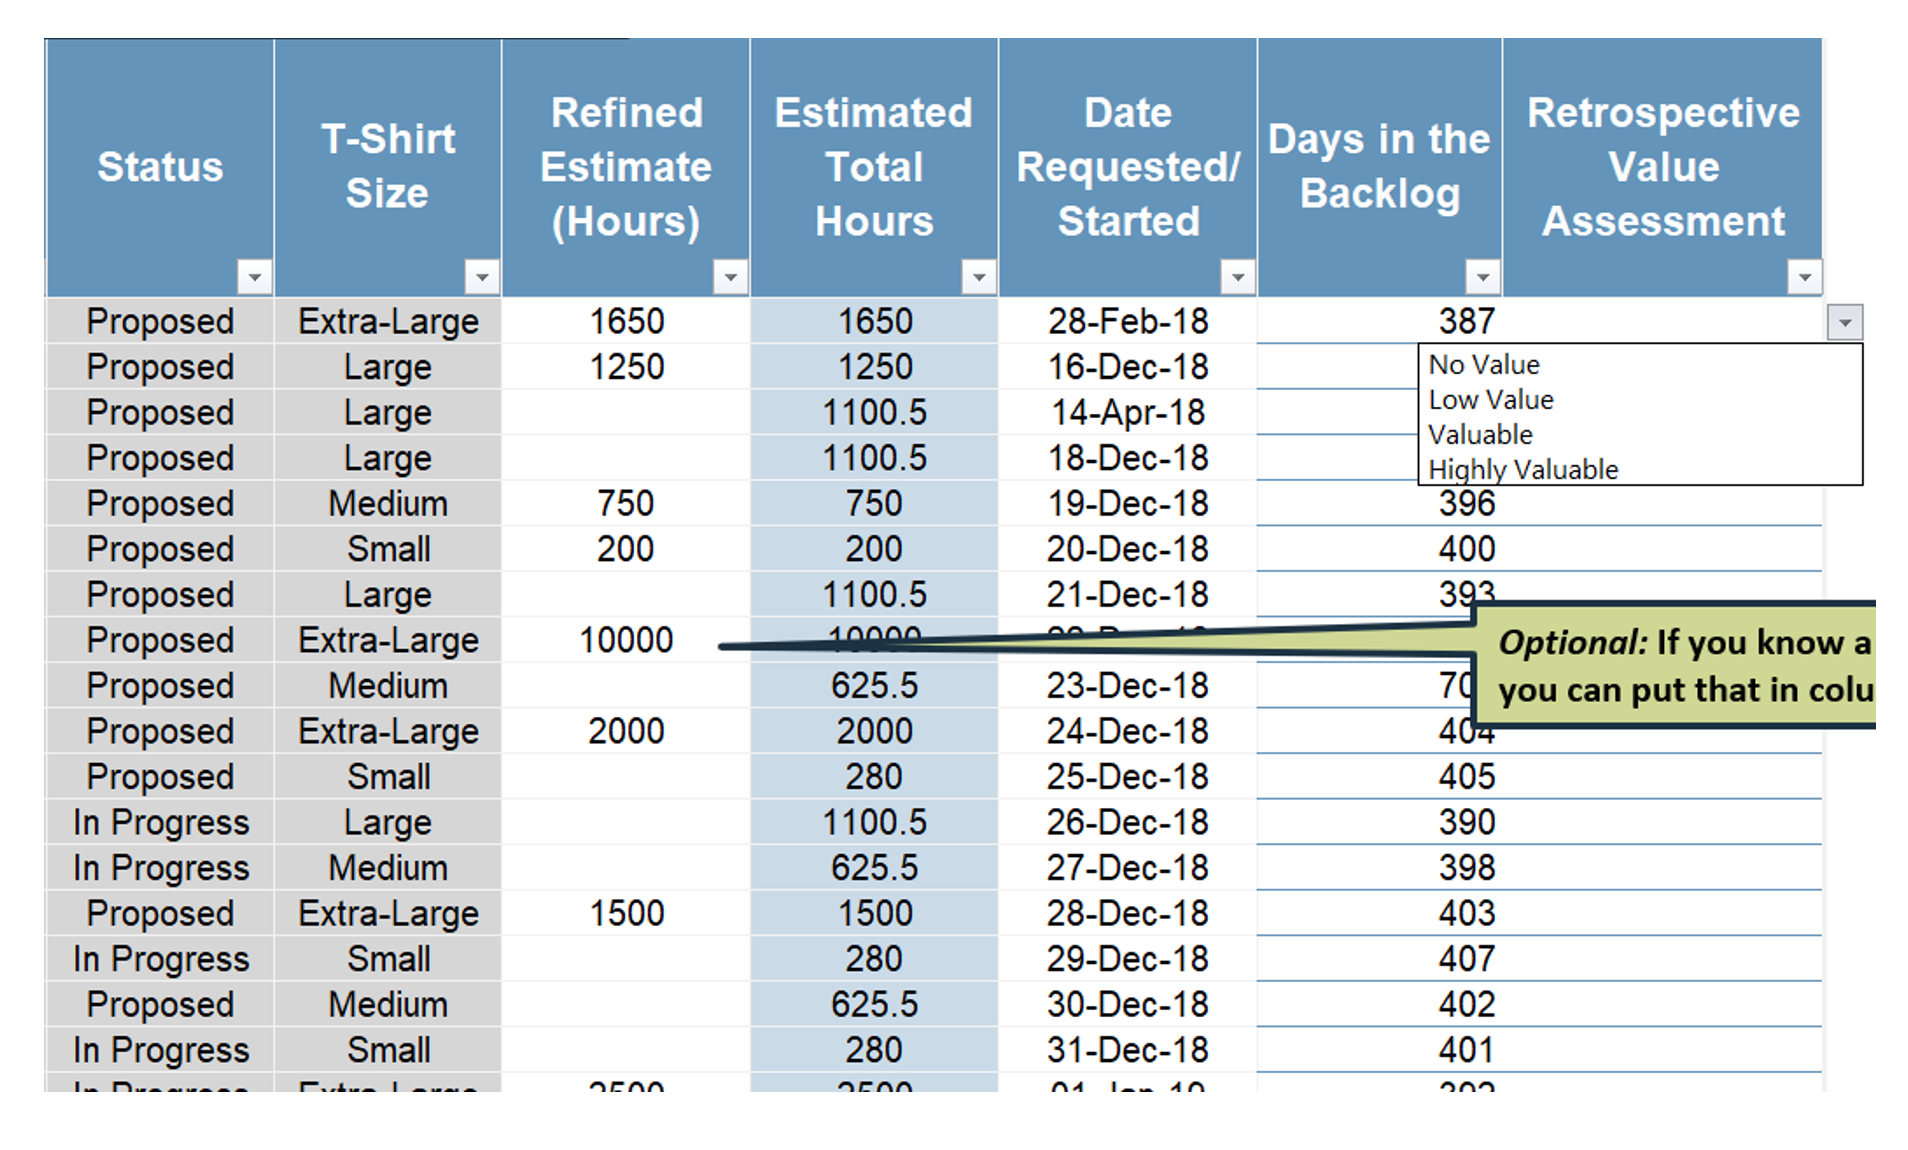 Project Backlog Overview